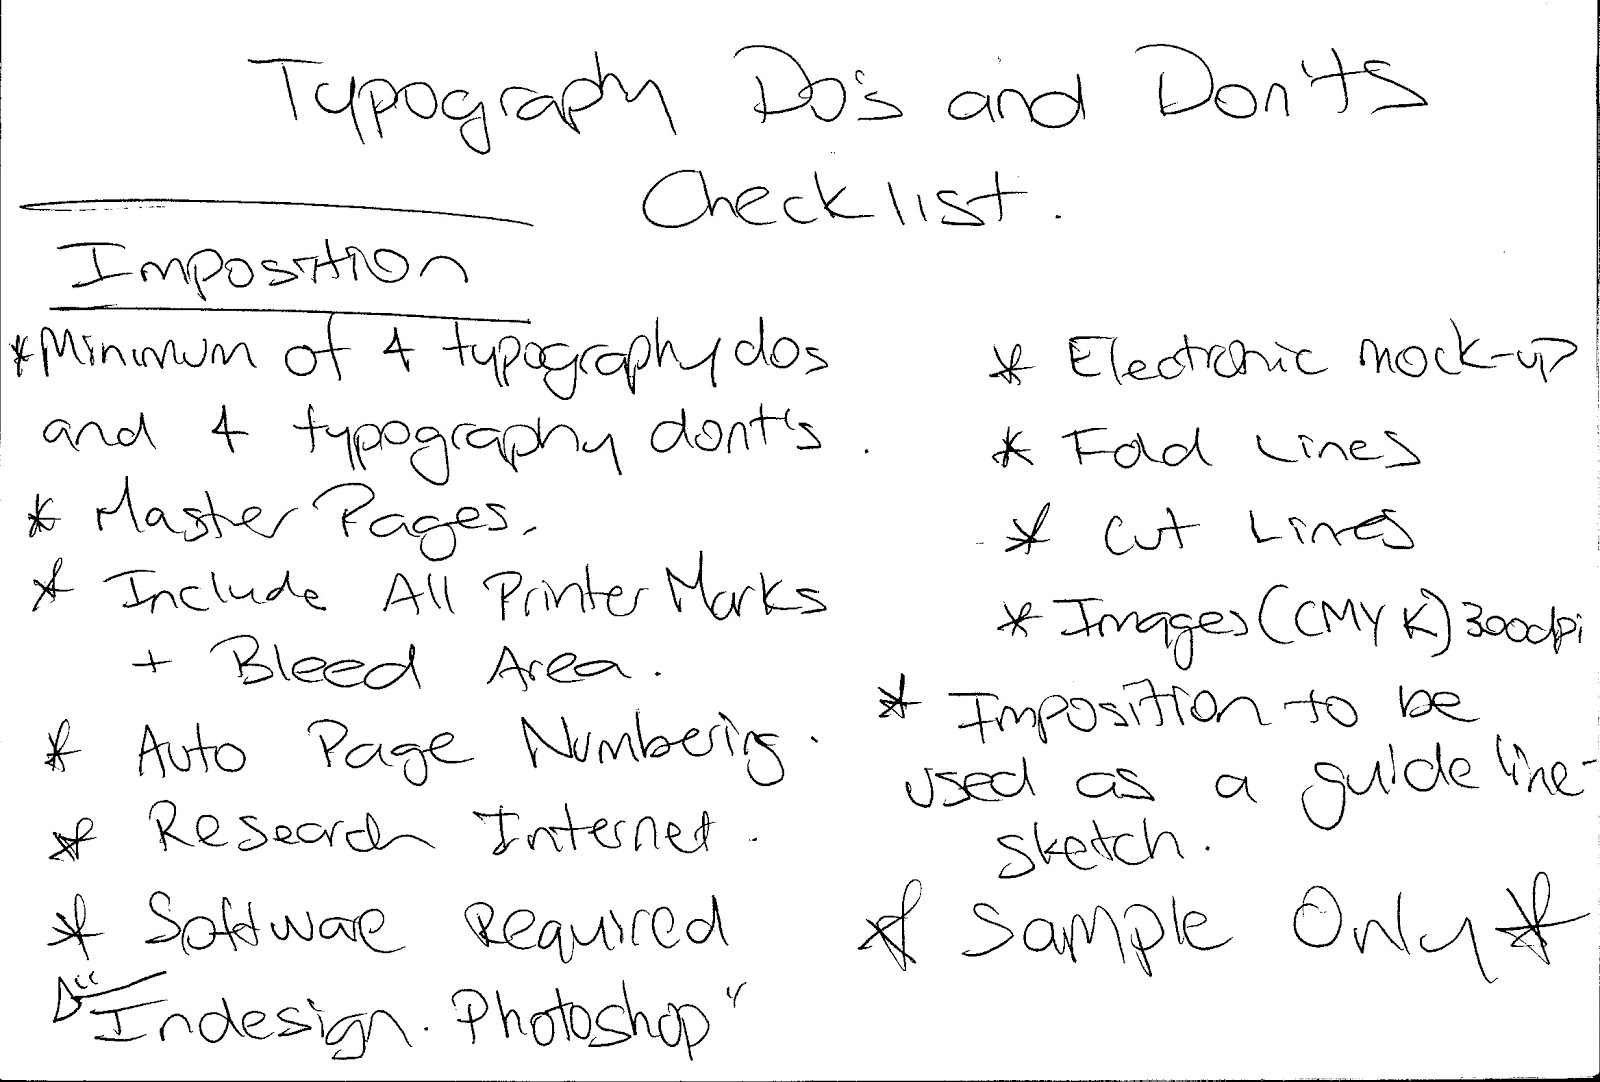 TYPOGRAPHY DO's AND DONT's CHECKLIST